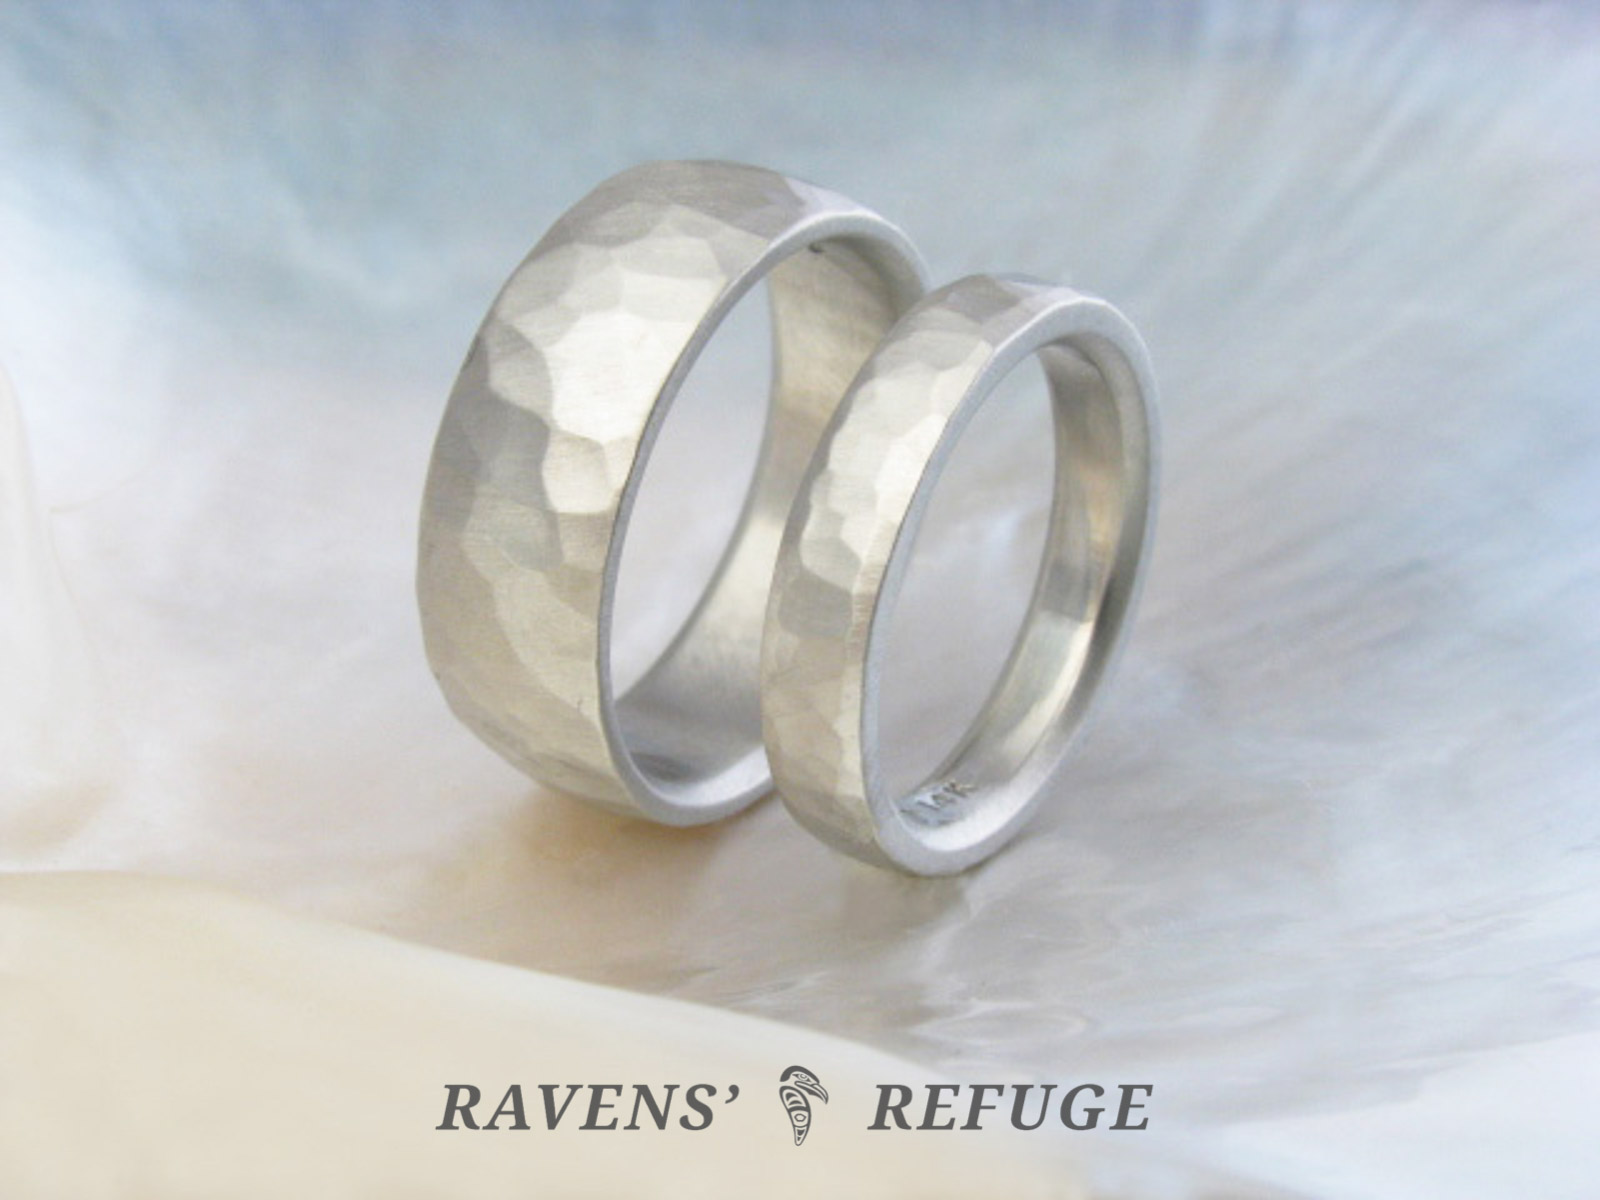 rustic wedding rings – his hers wedding band set - Ravens\' Refuge